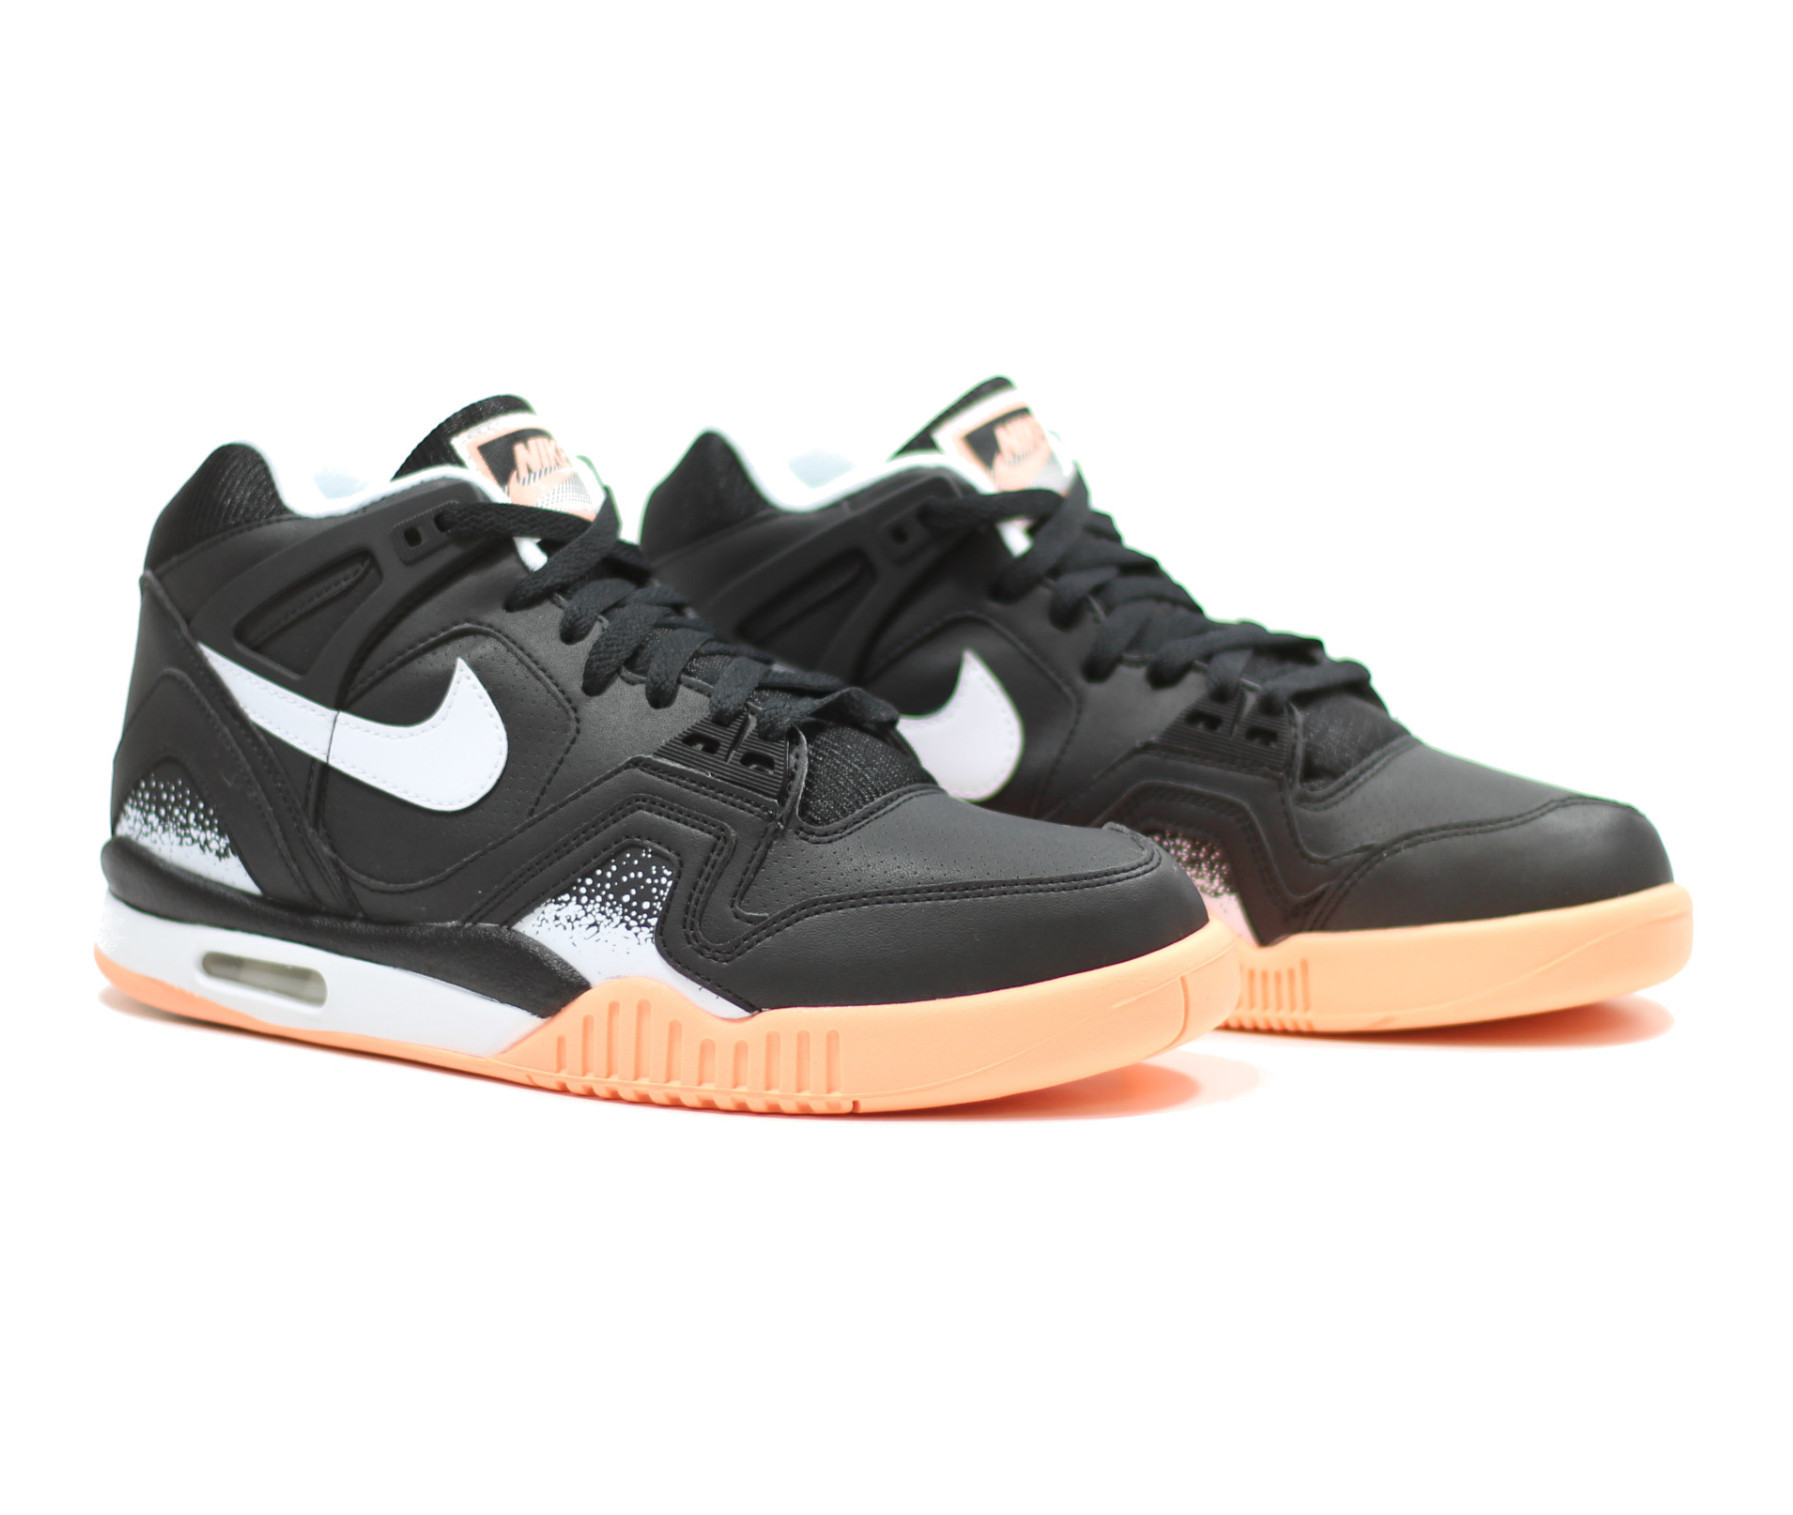 new styles d8d71 afcbc Nike Air Tech Challenge II Color BlackWhite-Sunset Glow Style 318408-002